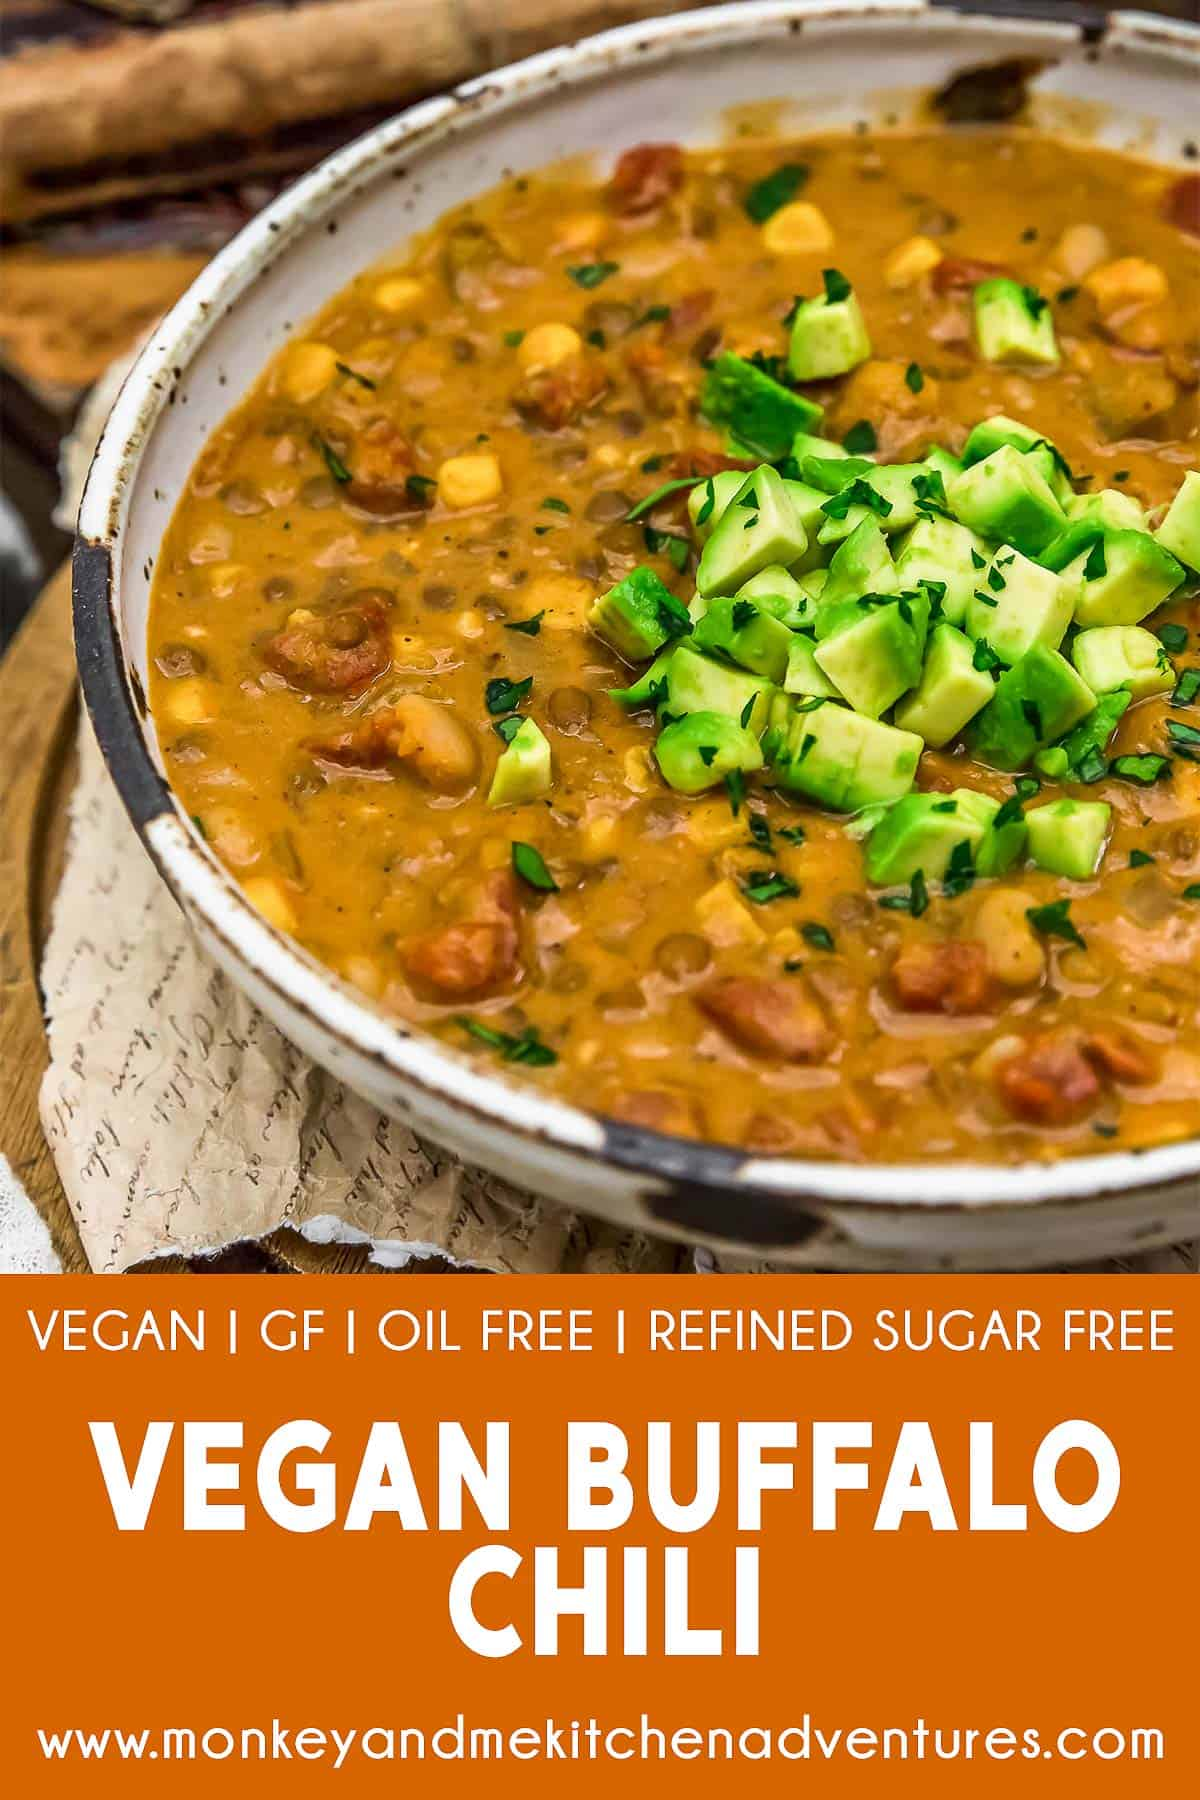 Vegan Buffalo Chili with text description